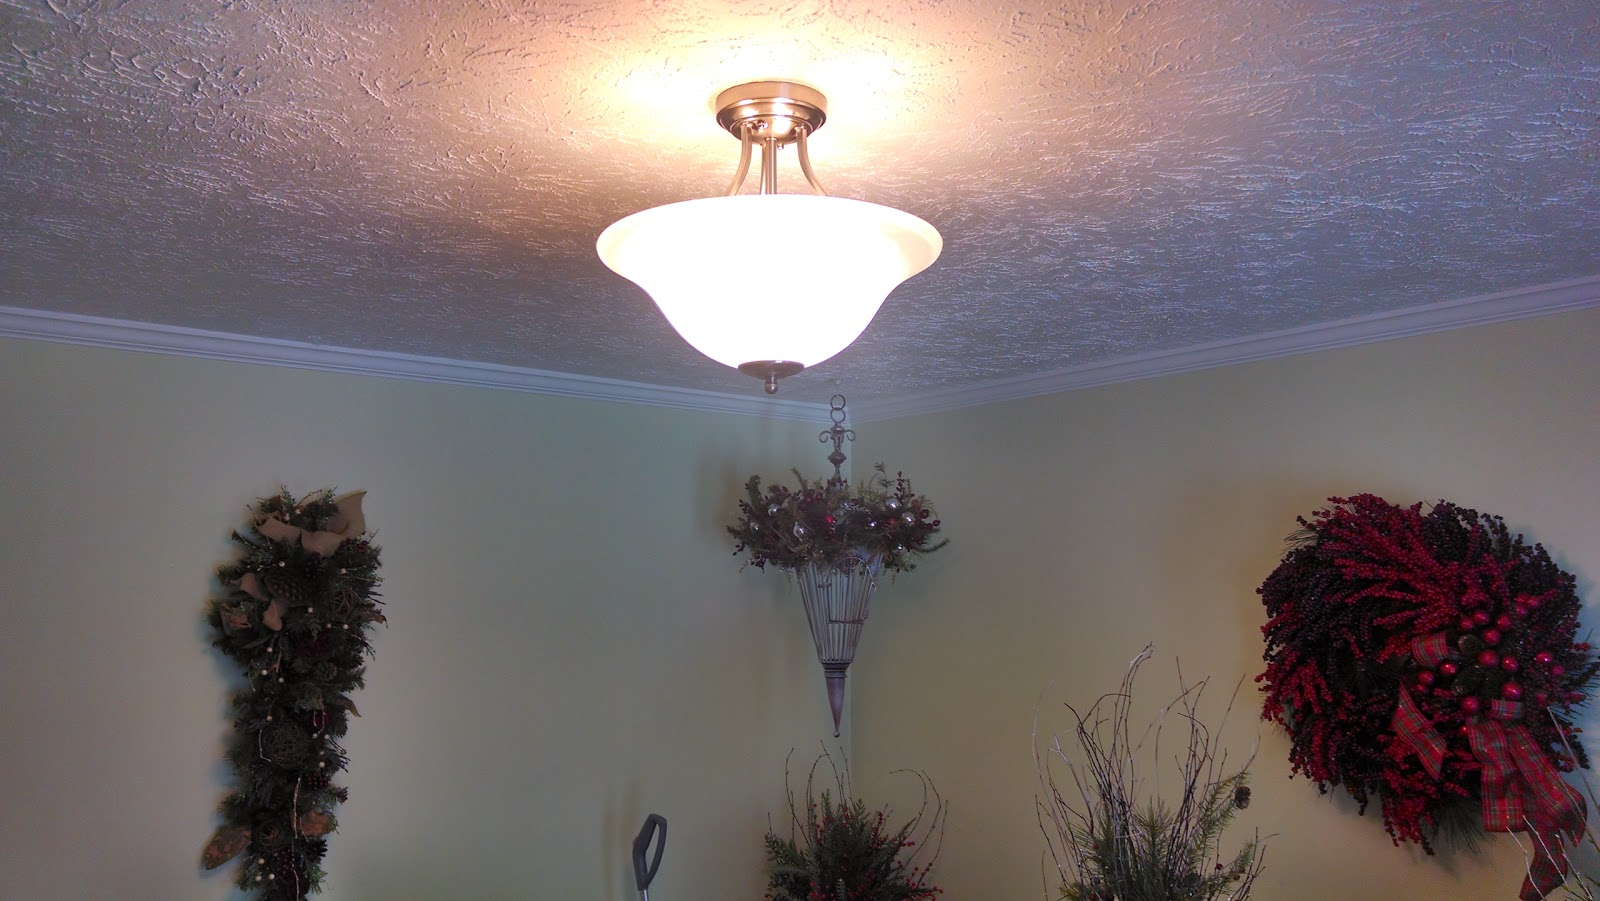 Marks project blog replacing a ceiling fan with a light fixture replacing a ceiling fan with a light fixture aloadofball Image collections